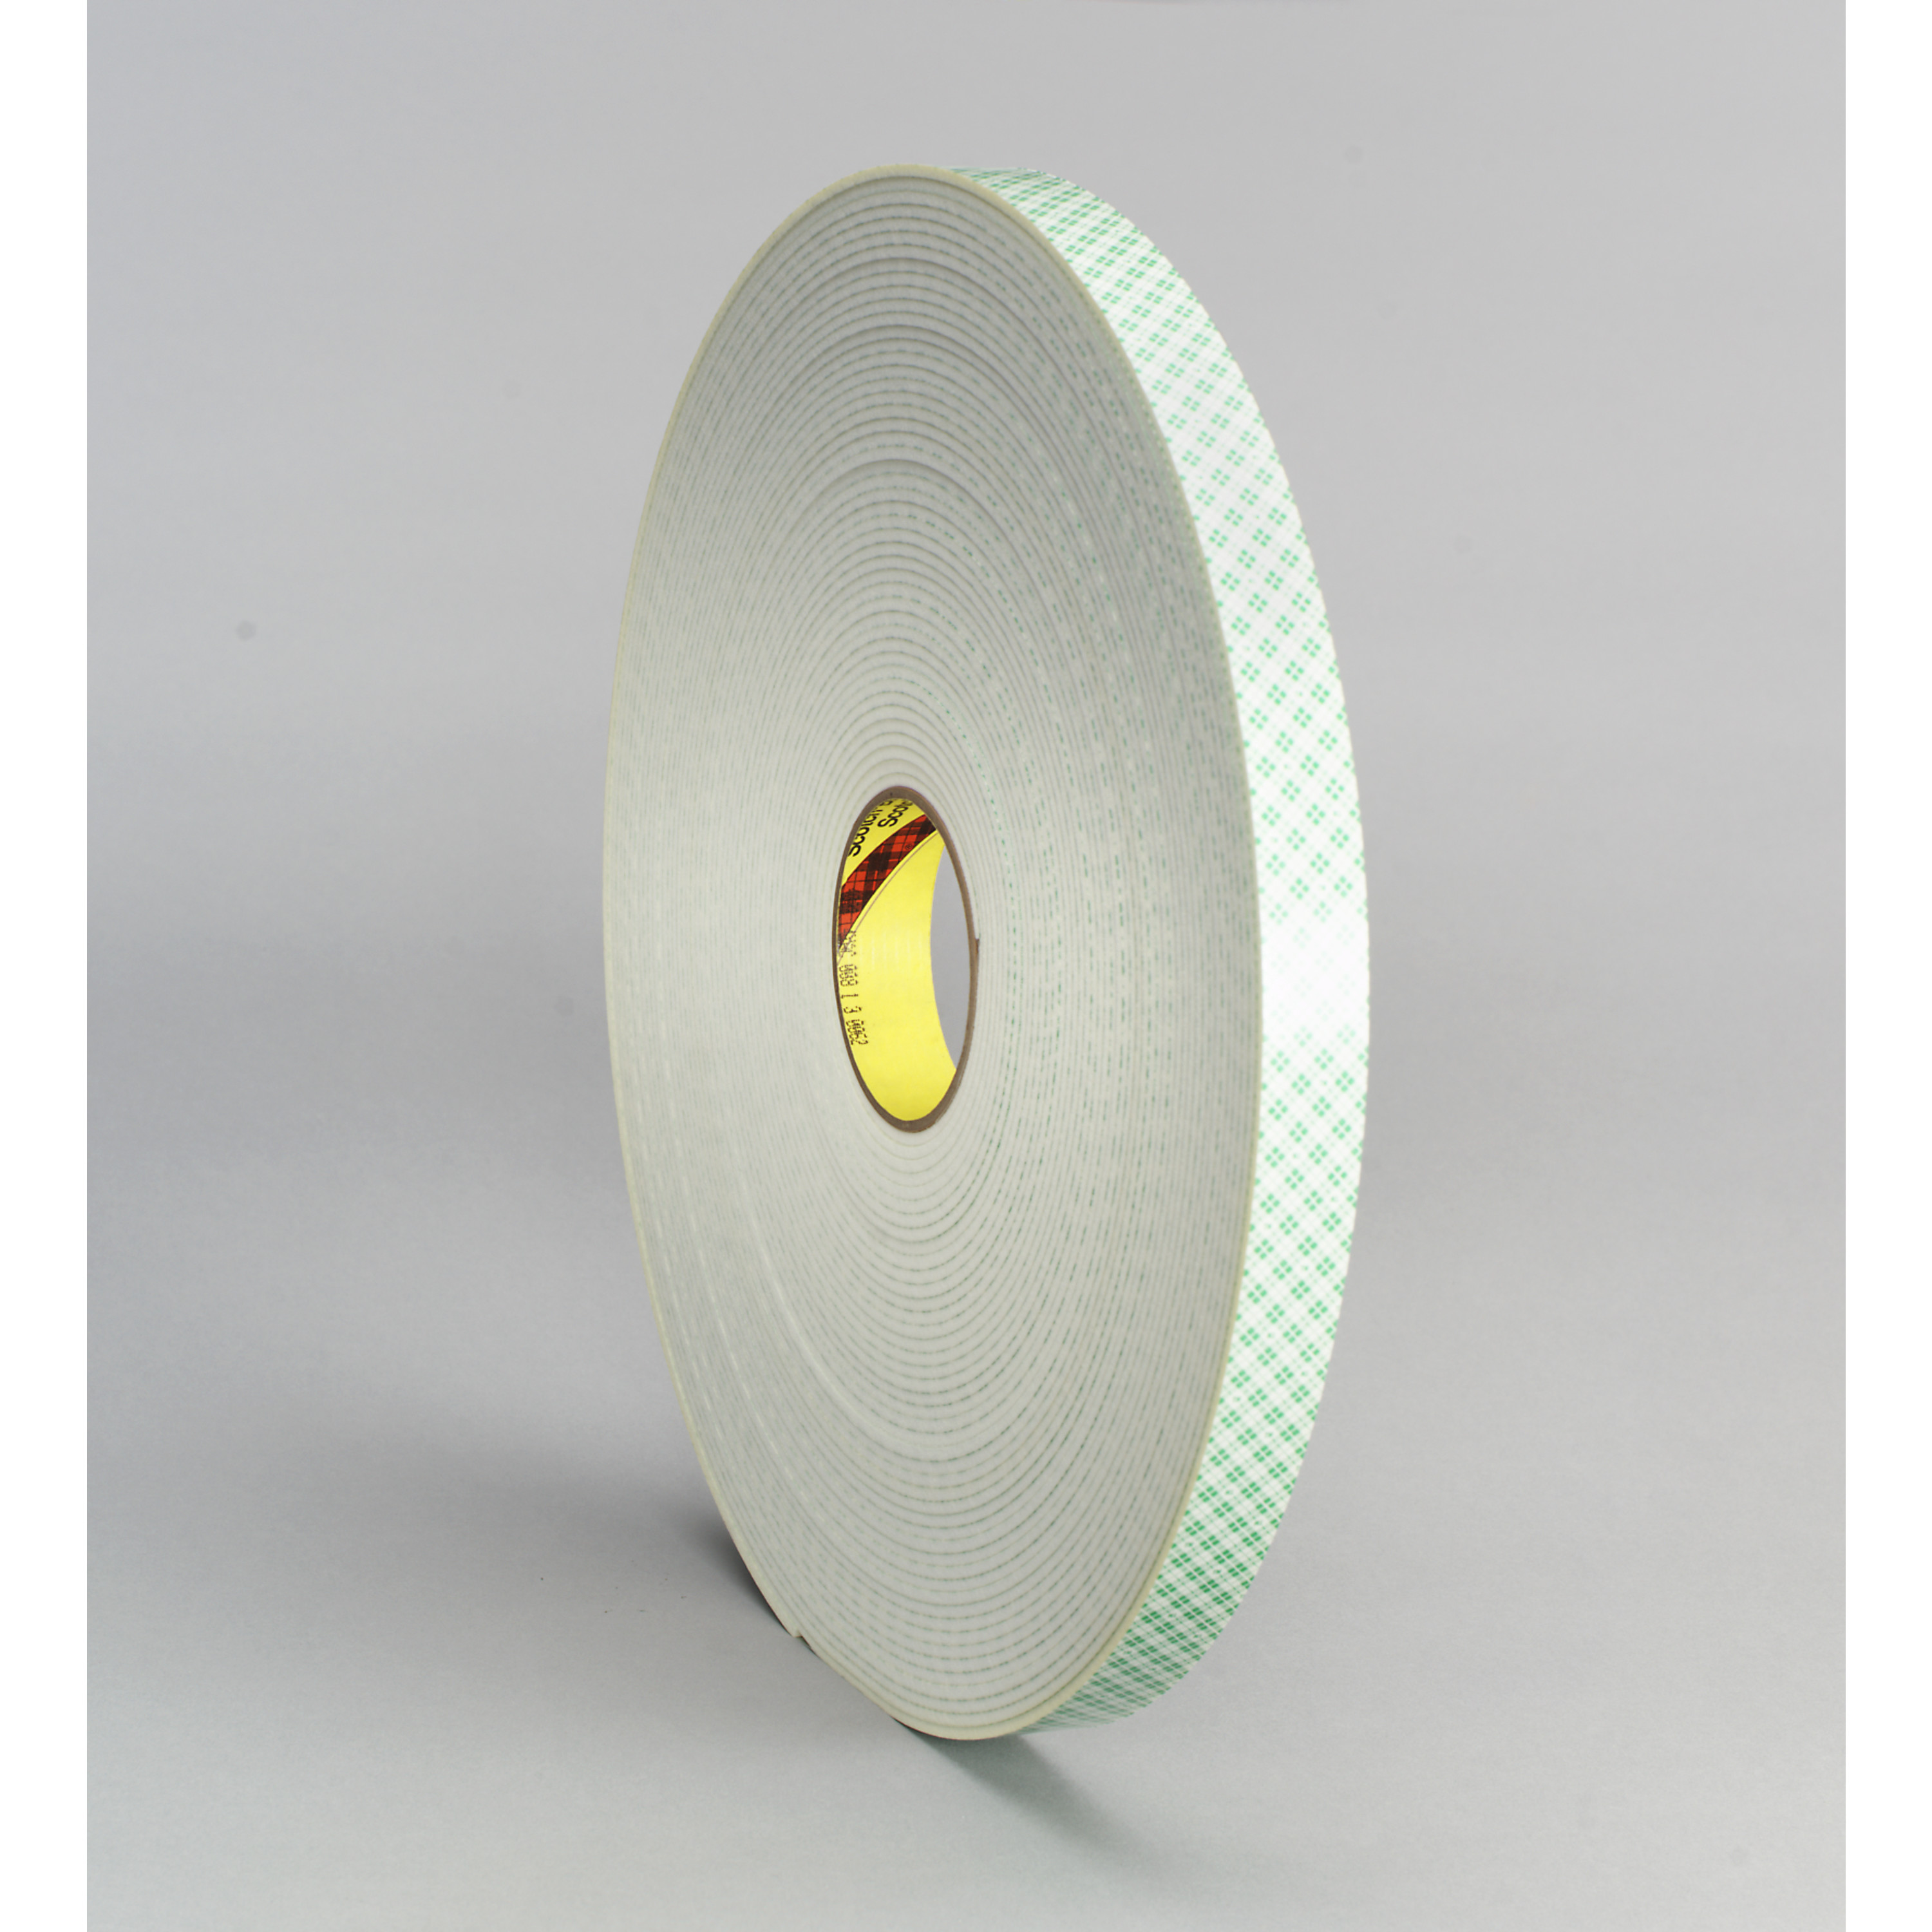 3M™ Extra thick Multipurpose Mounting Tape 4008, Off White, 3/4 in x 7 yd, 125 mil, 12 rolls per case